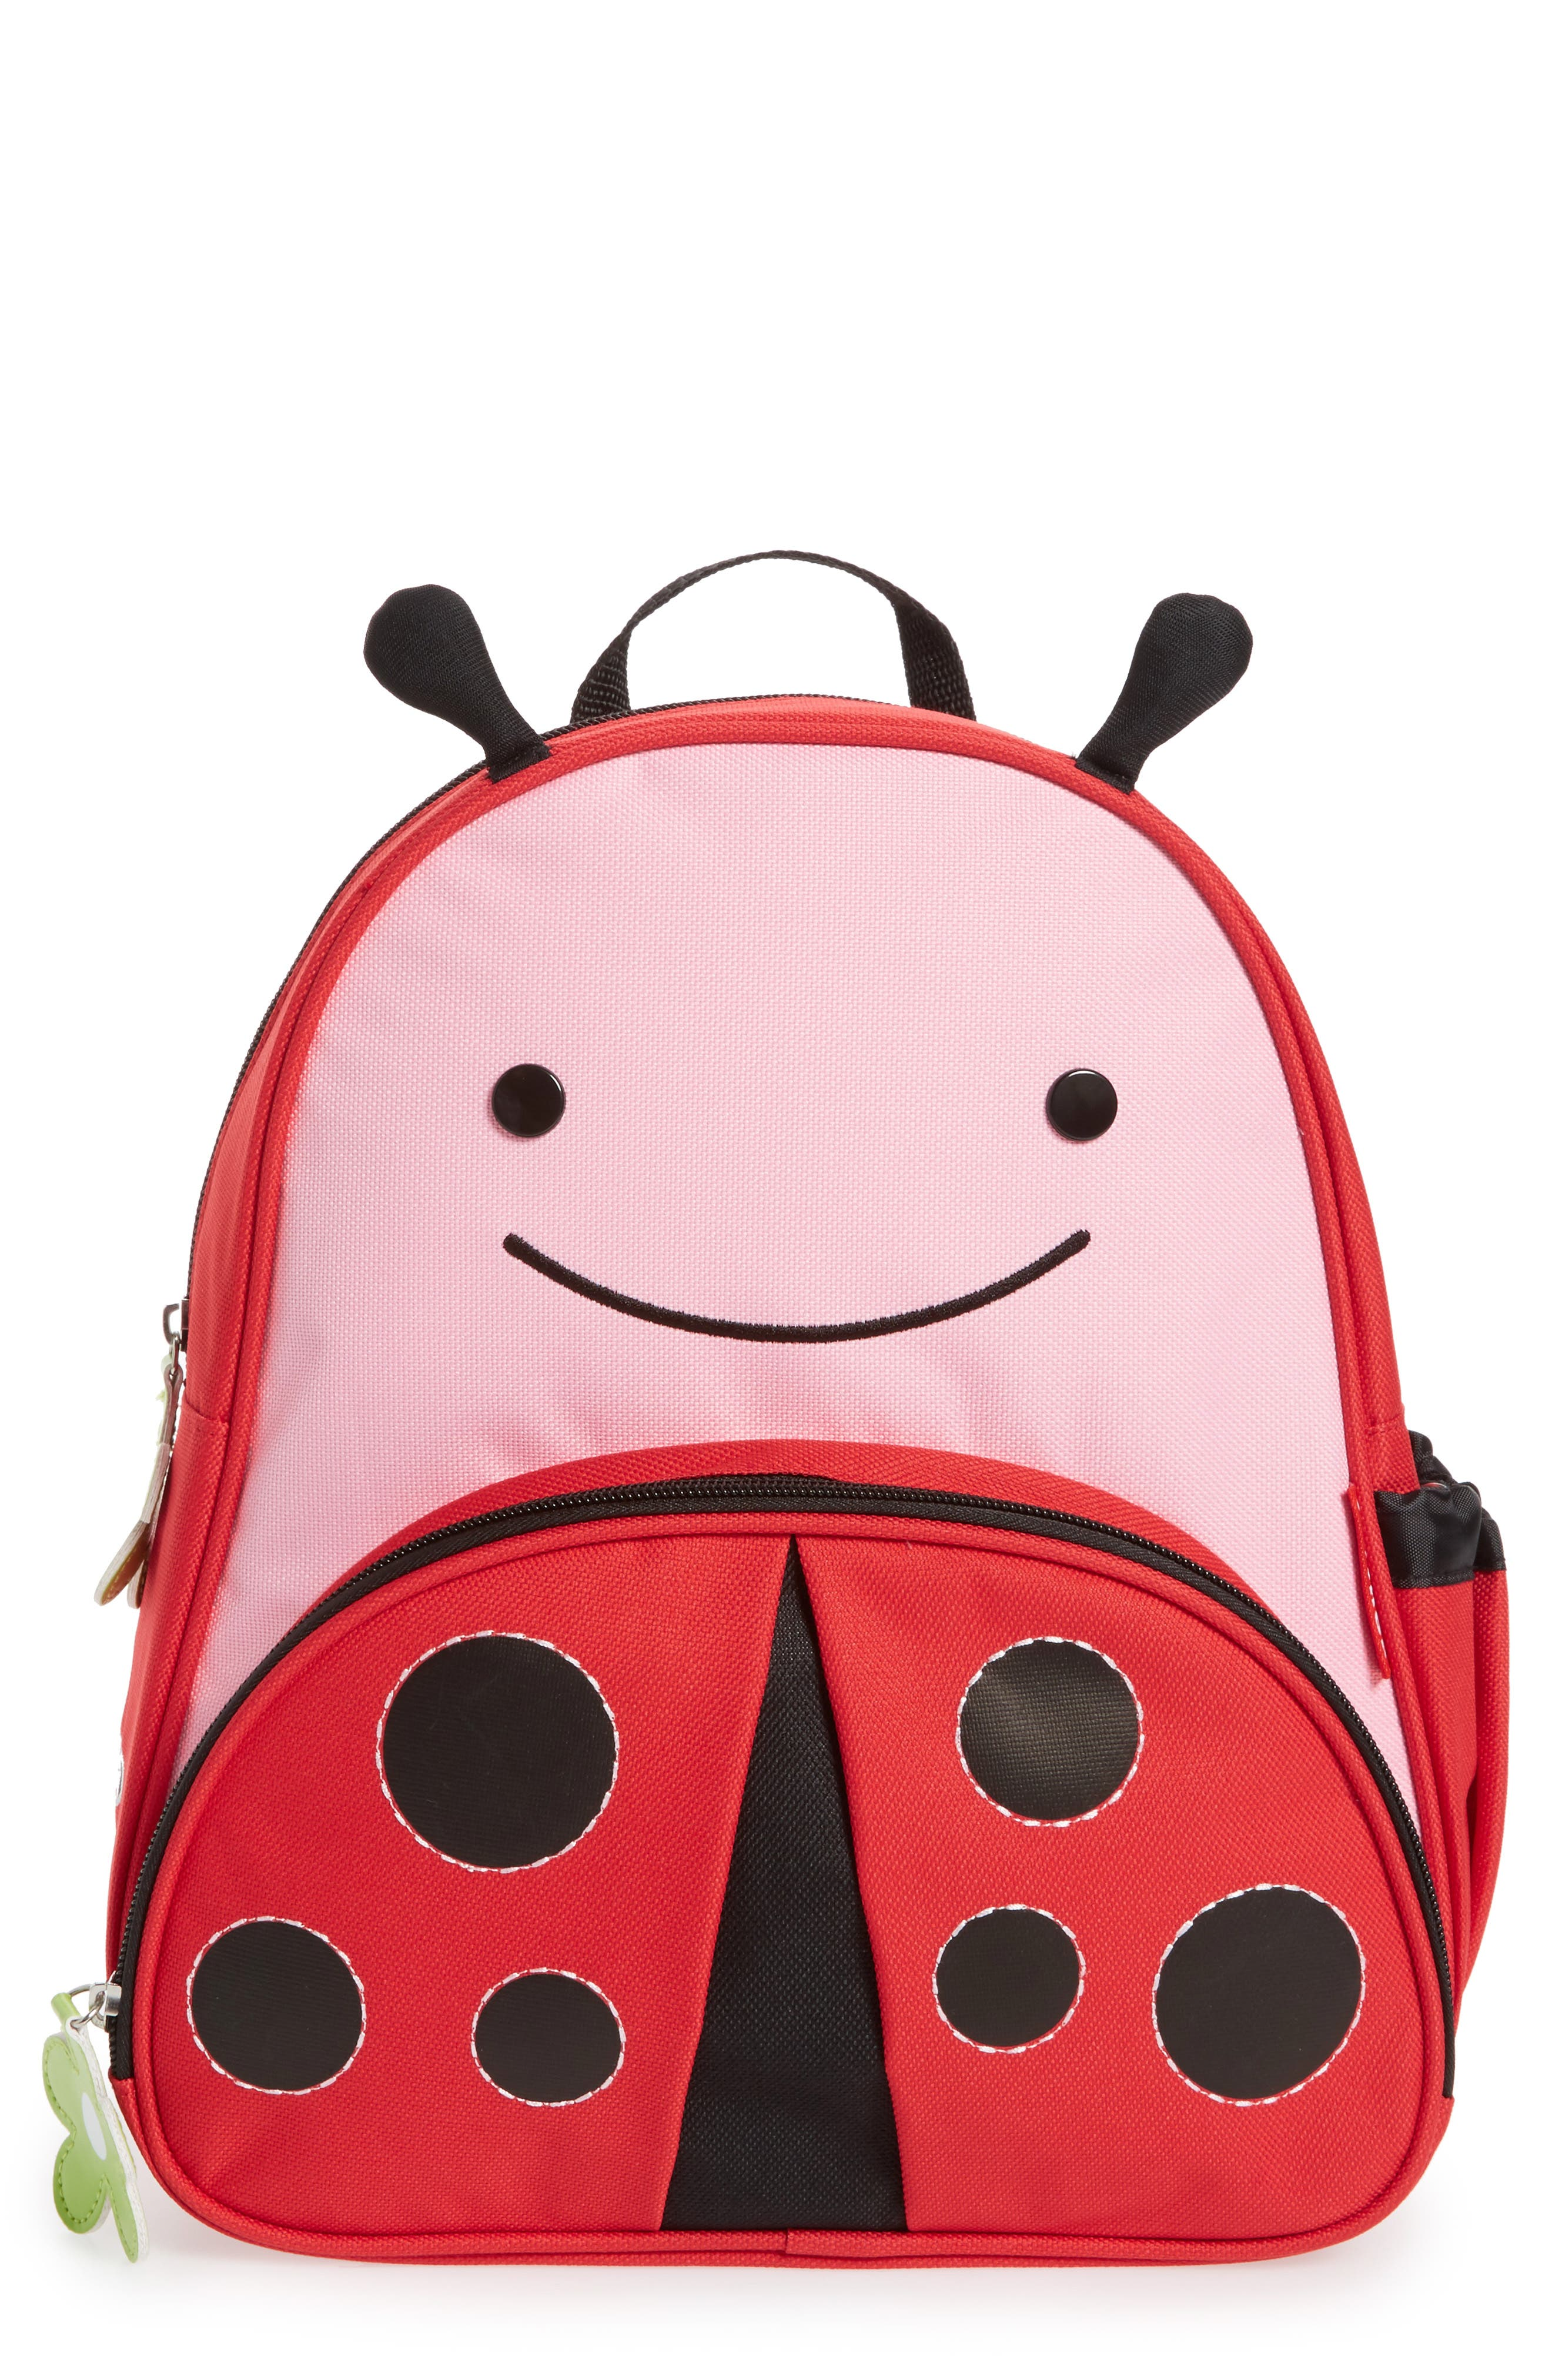 Zoo Pack Backpack,                             Main thumbnail 1, color,                             Pink/Red Multi